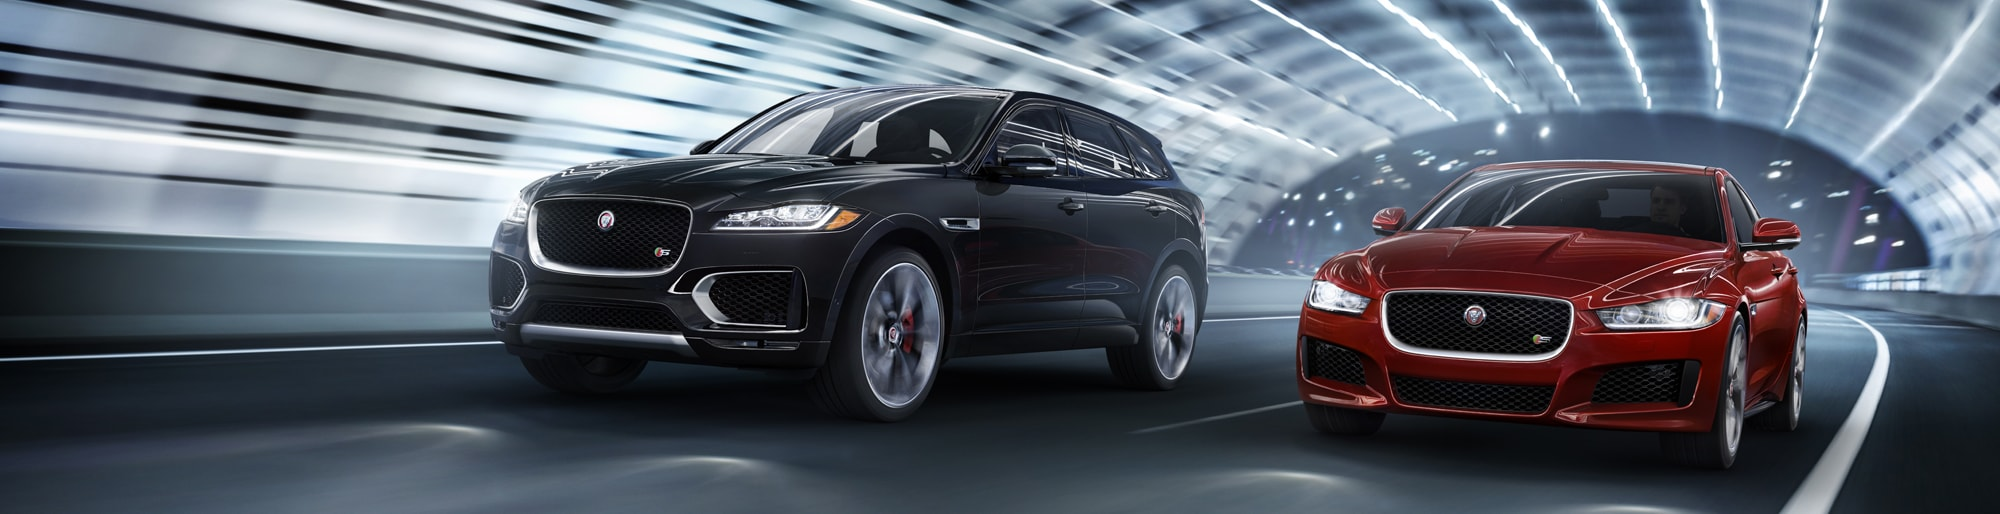 Chicago Car Dealers | Jaguar Land Rover Volvo | Orloff Imports